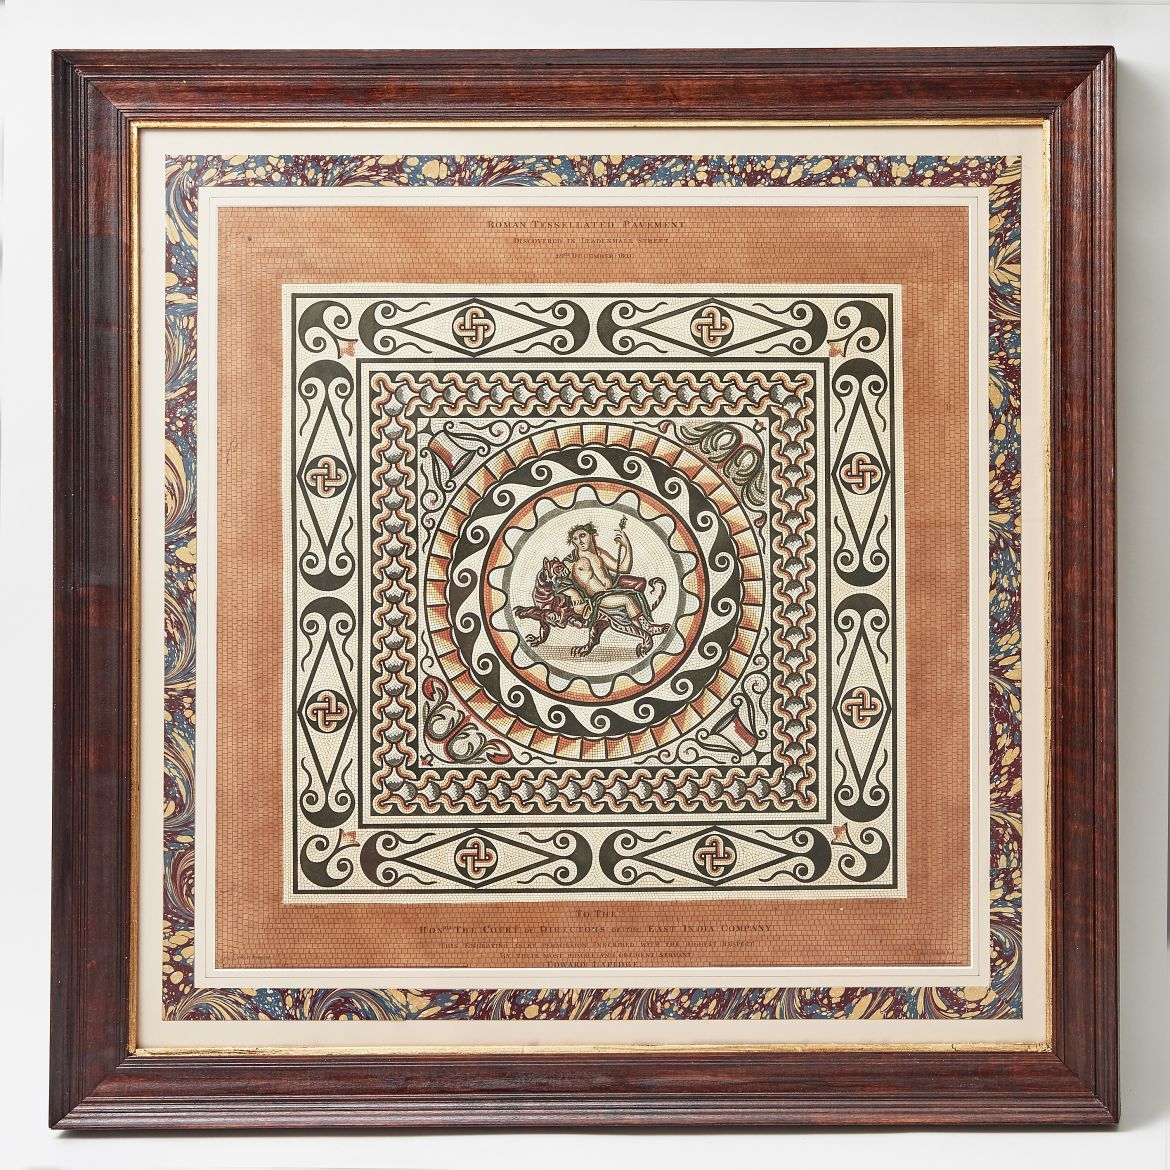 J.Roffe Lithograph of Roman Pavement Tile